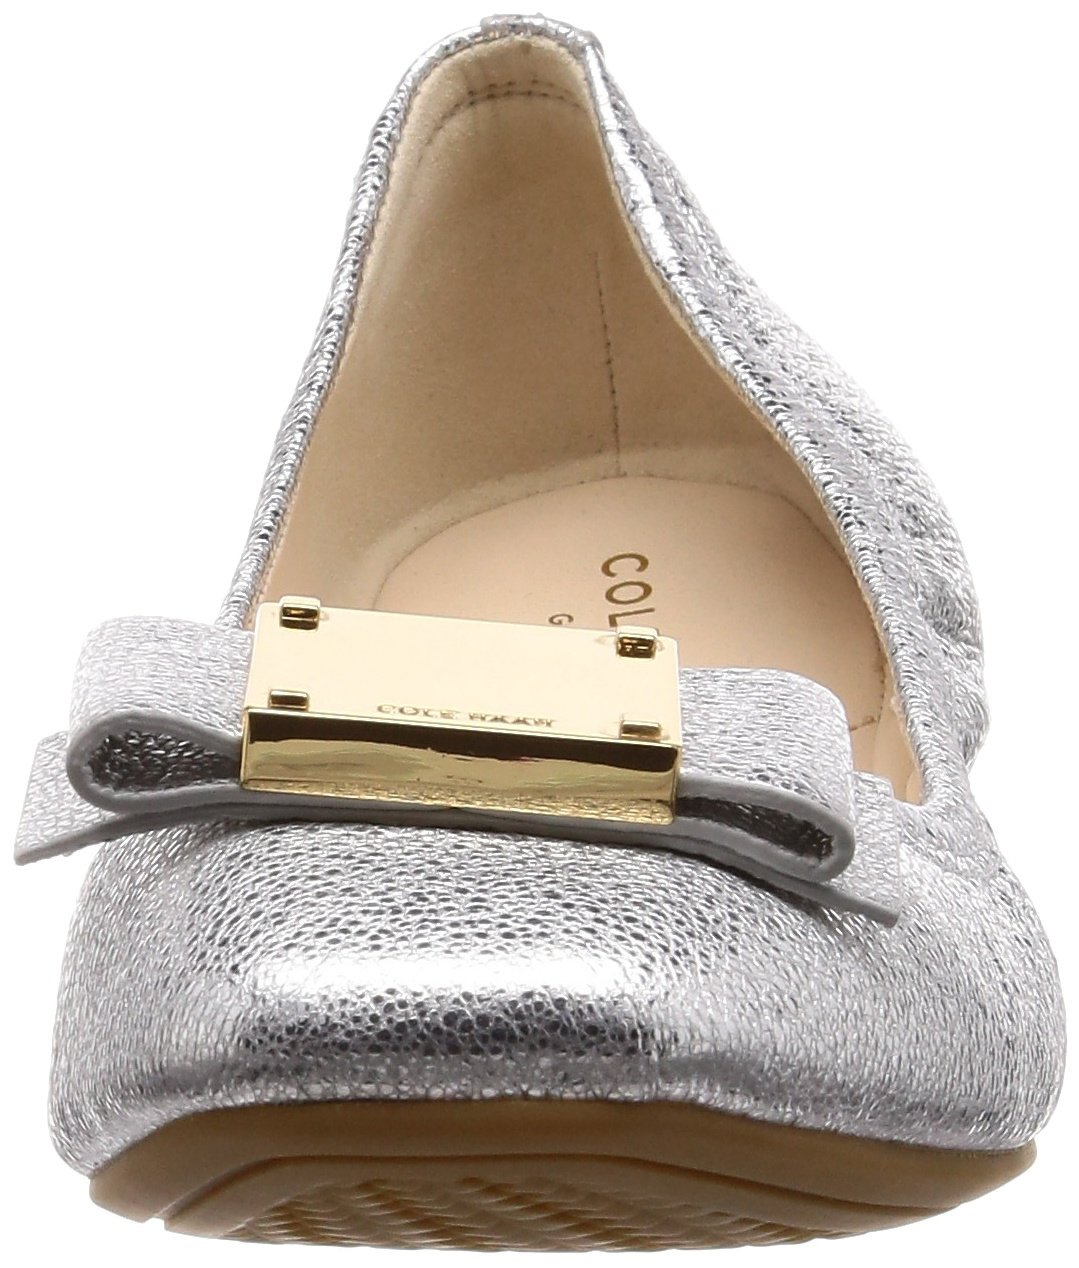 Cole Haan Womens Tali Modern Bow Ballet B07BB14P26 8.5 AA US|Silver Crackle Metallic